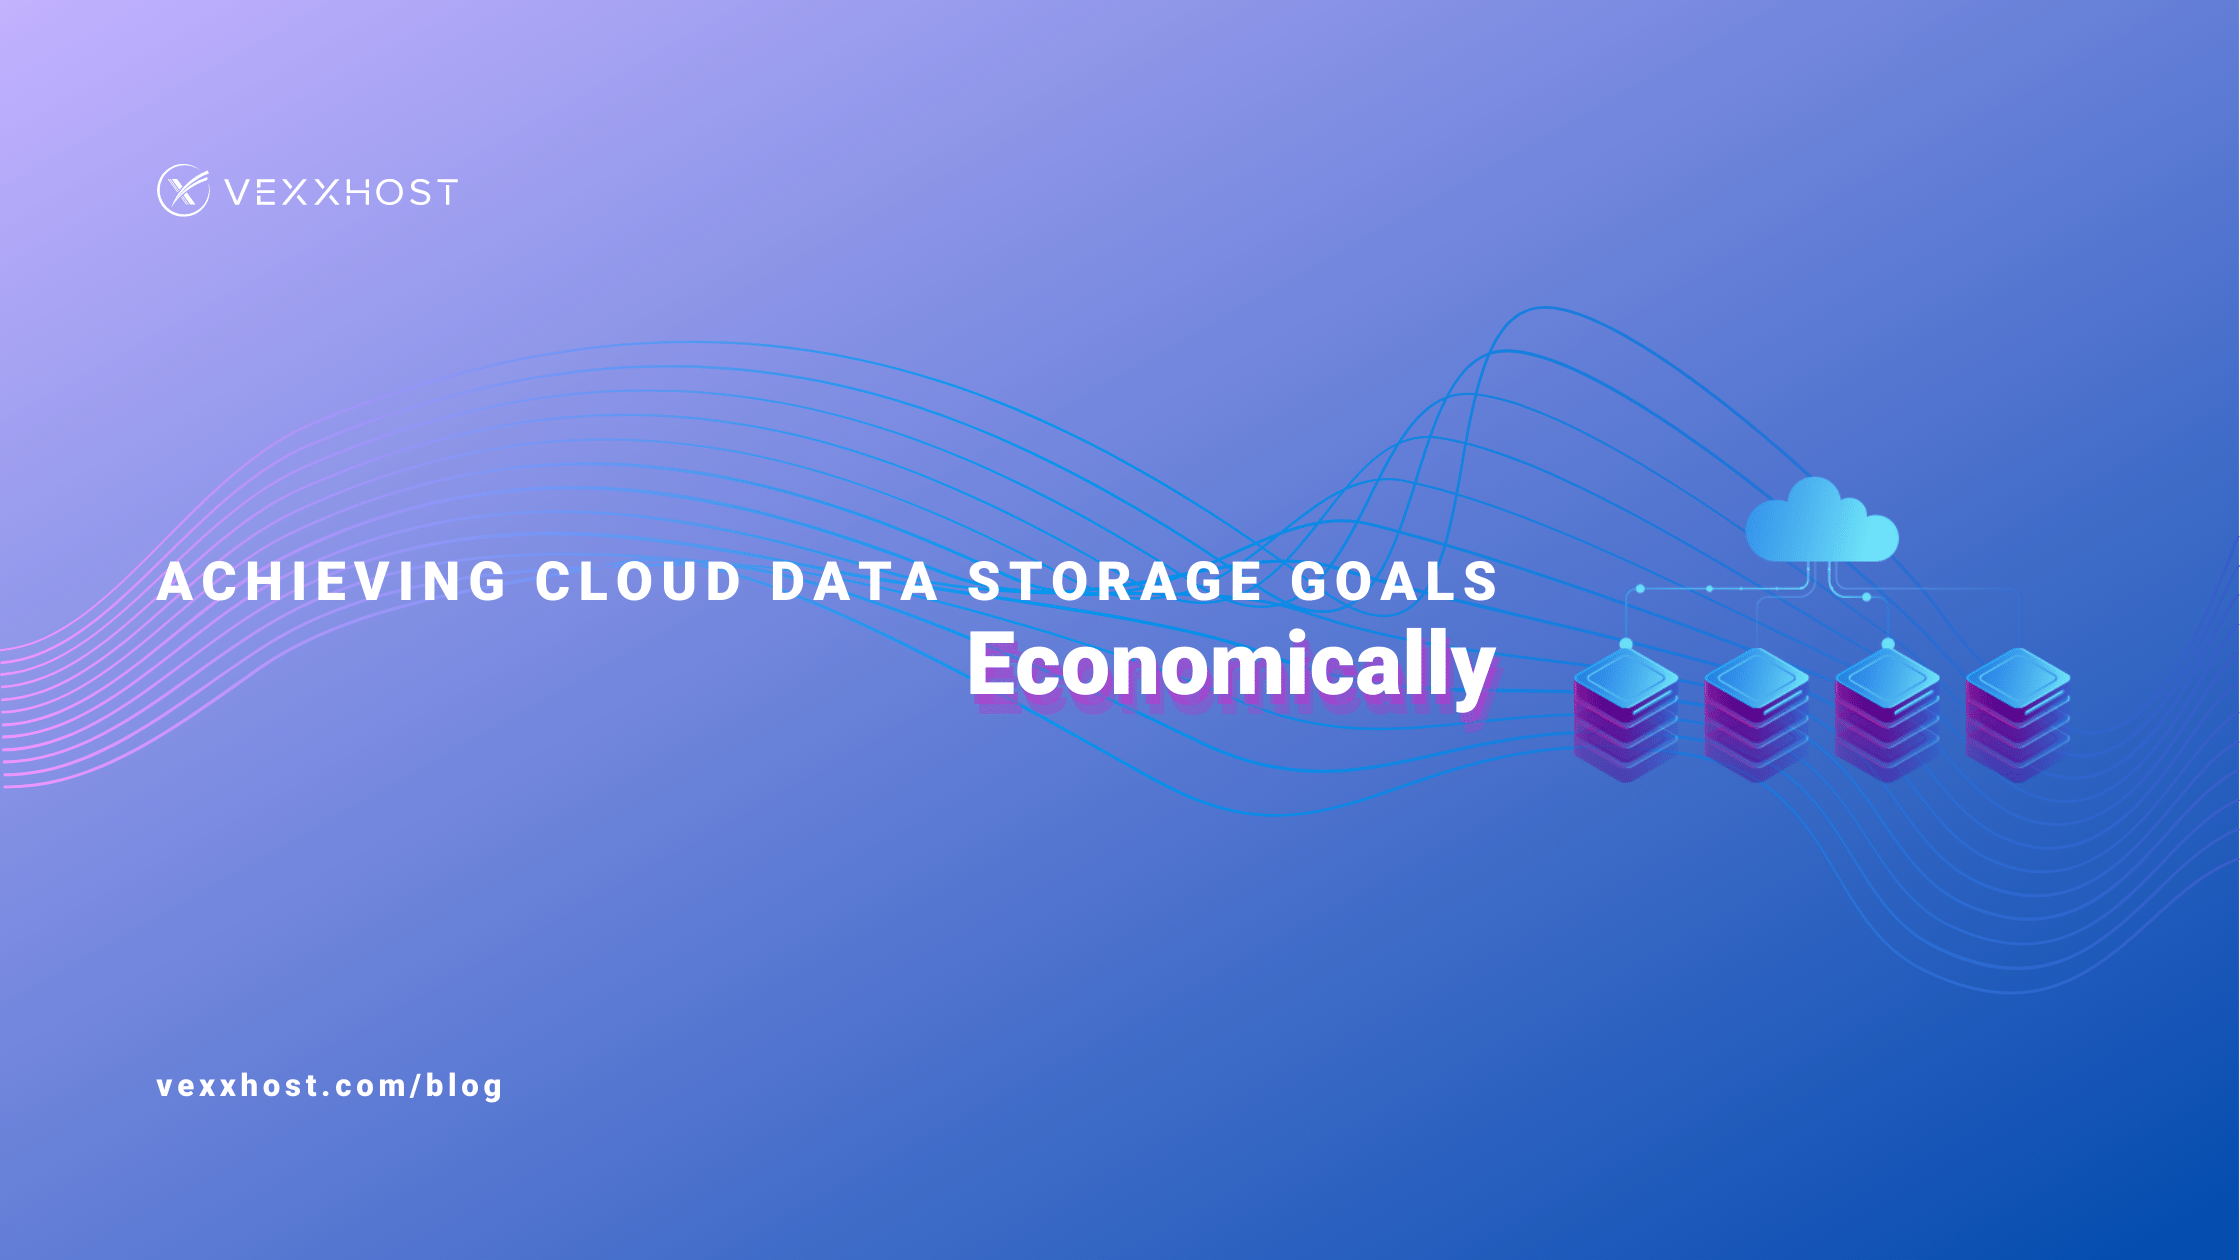 Achieving Cloud Data Storage Goals Economically